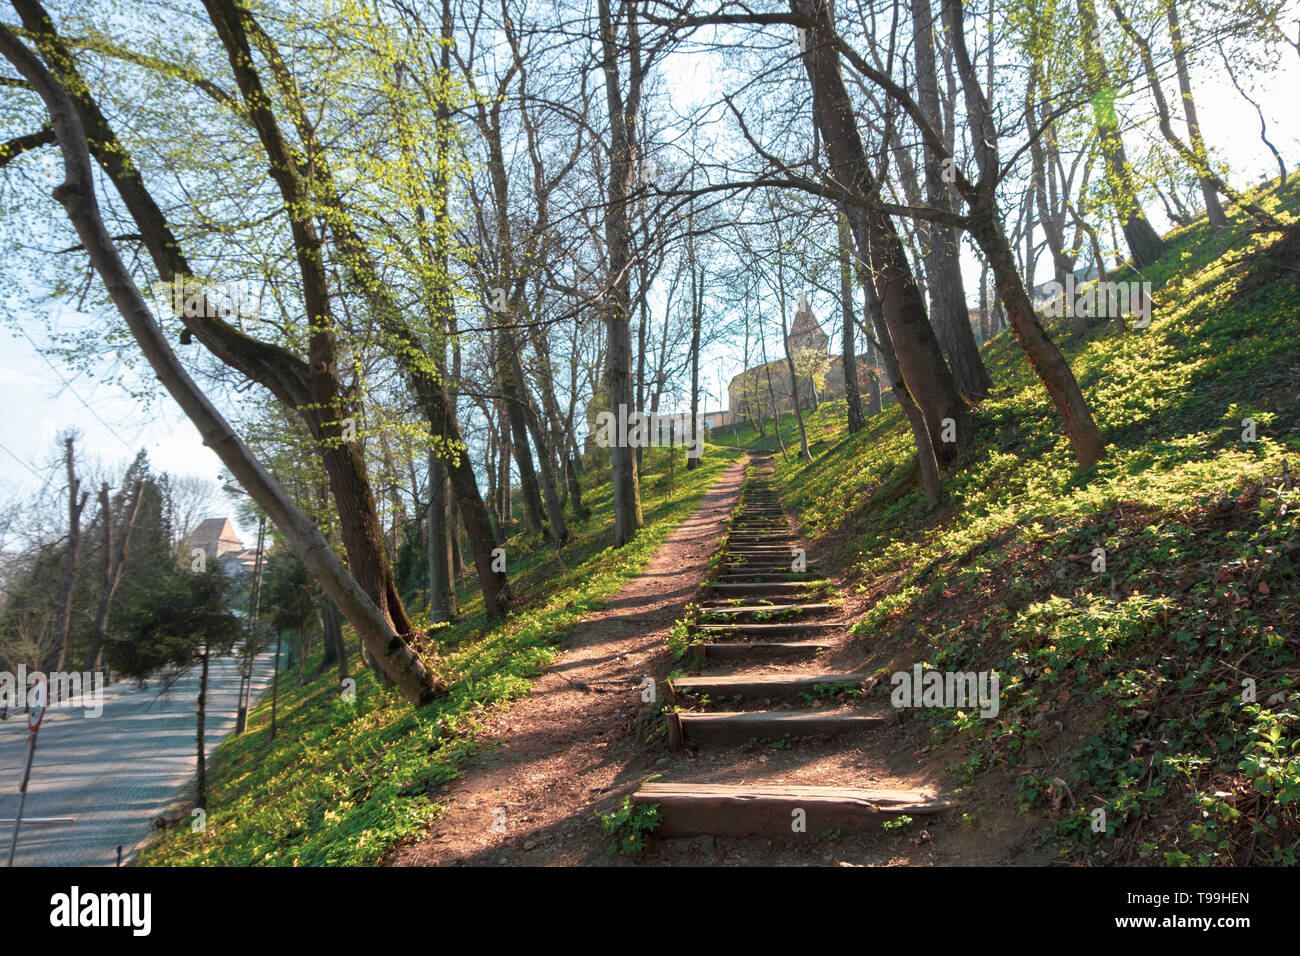 Wooden steps on the hill filled with blooming flowers, leading to the Butcher's tower in Sighisoara, tower built in the 15th century. - Stock Image